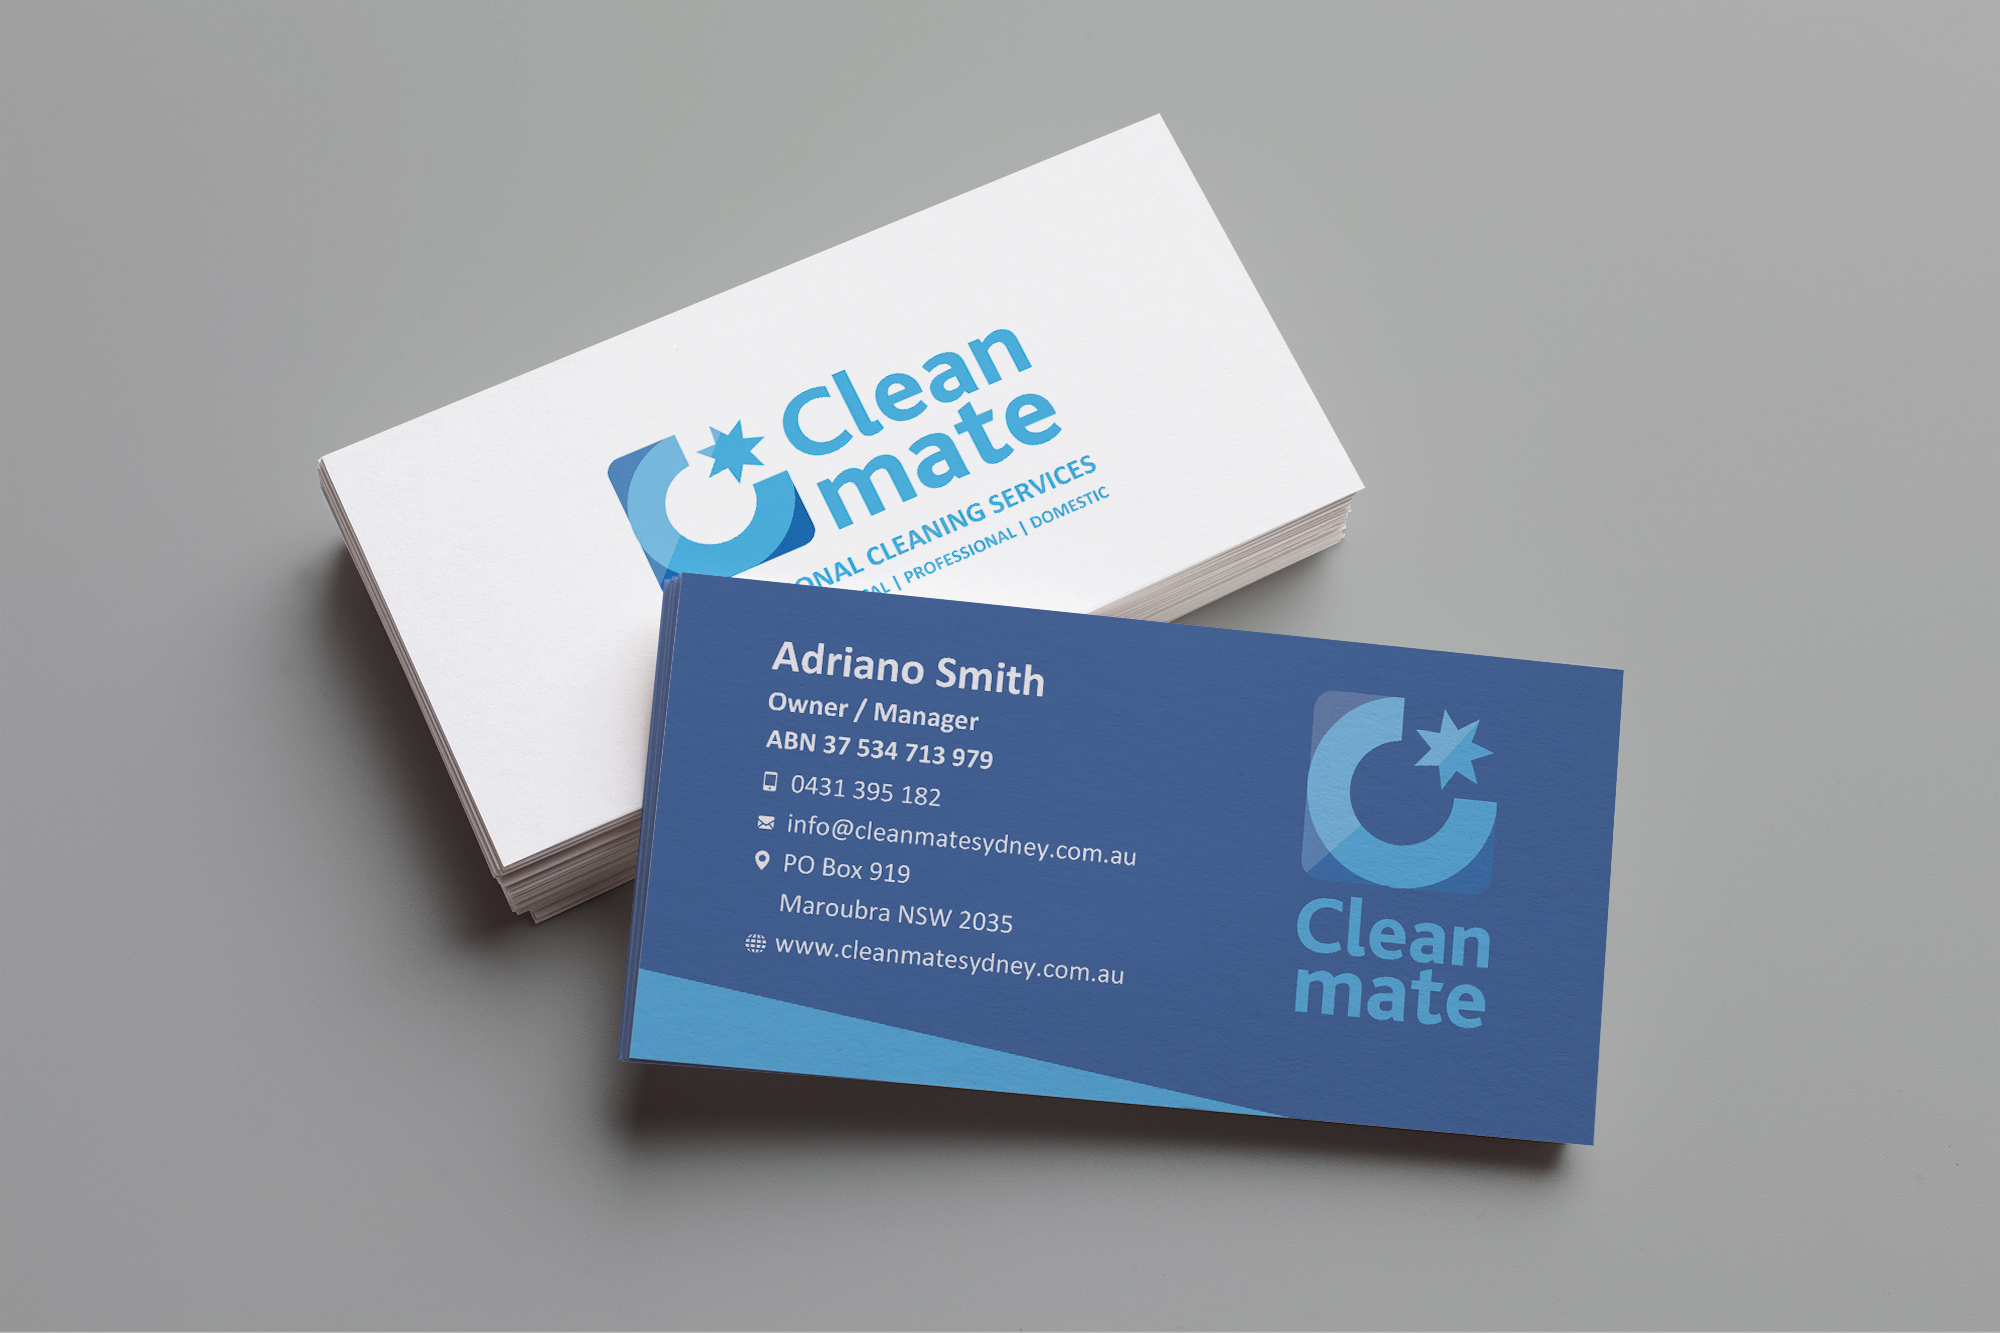 Cleanmate Cards